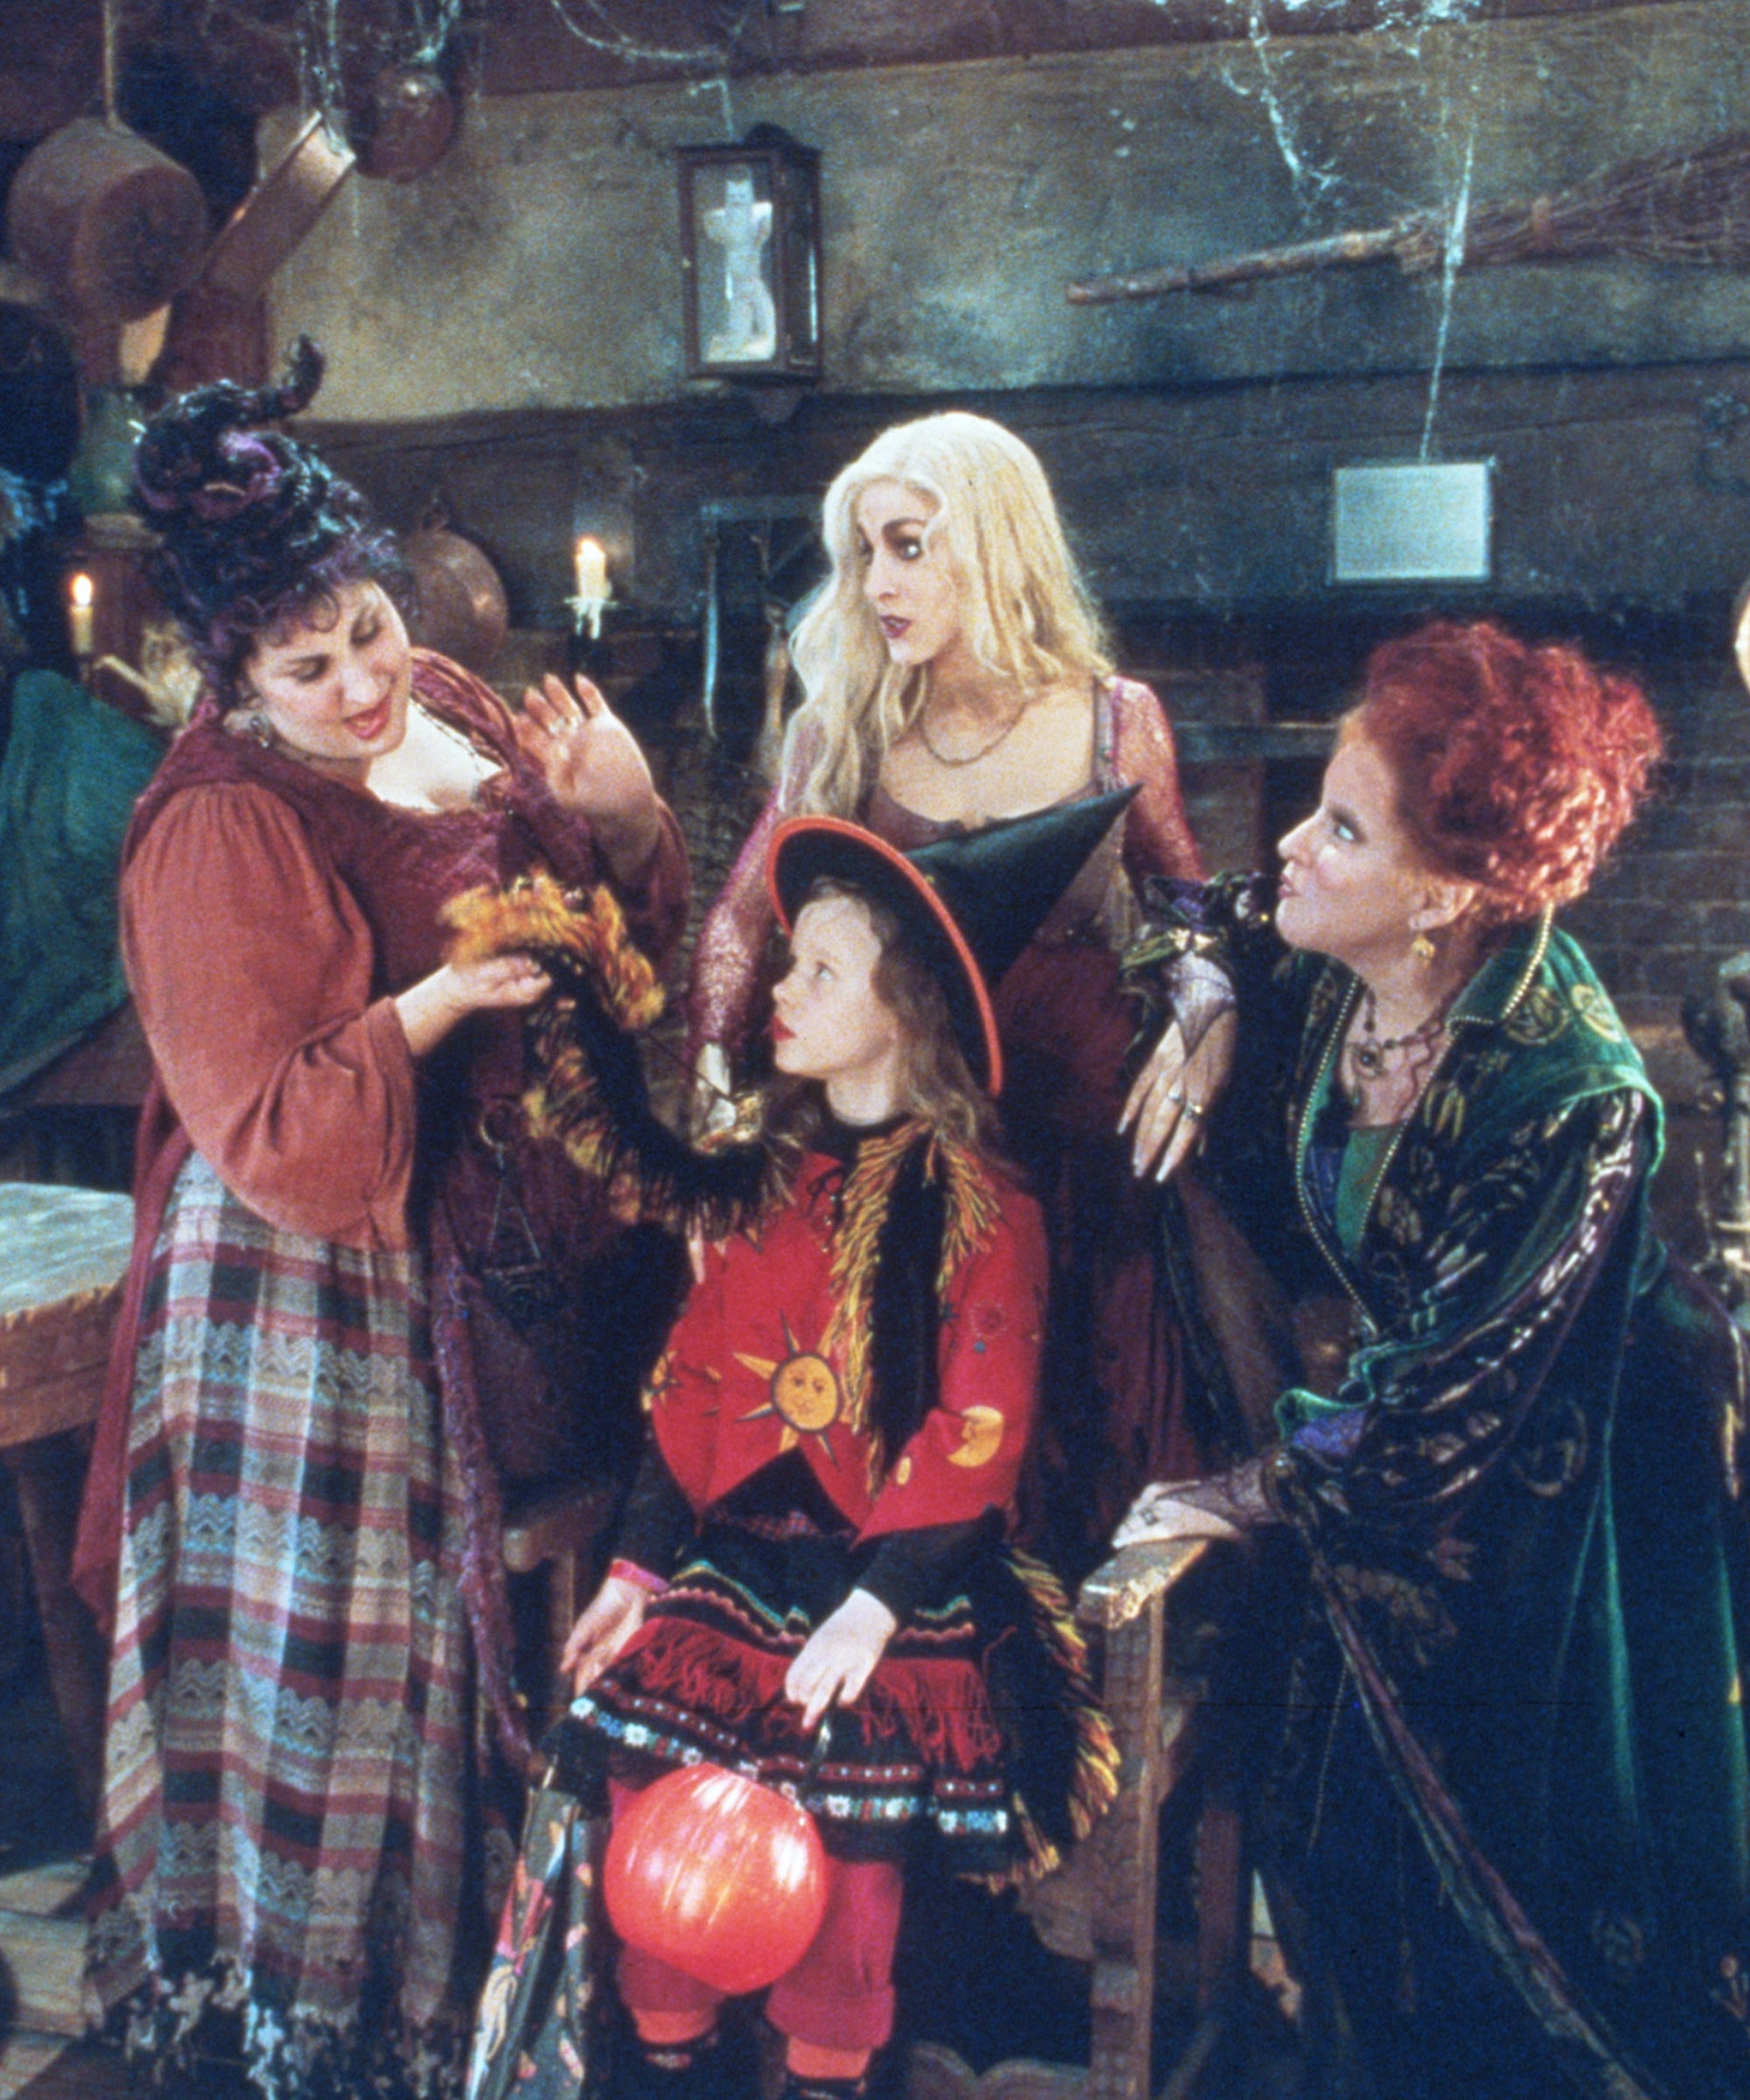 Best Hocus Pocus Quotes Instagram Captions